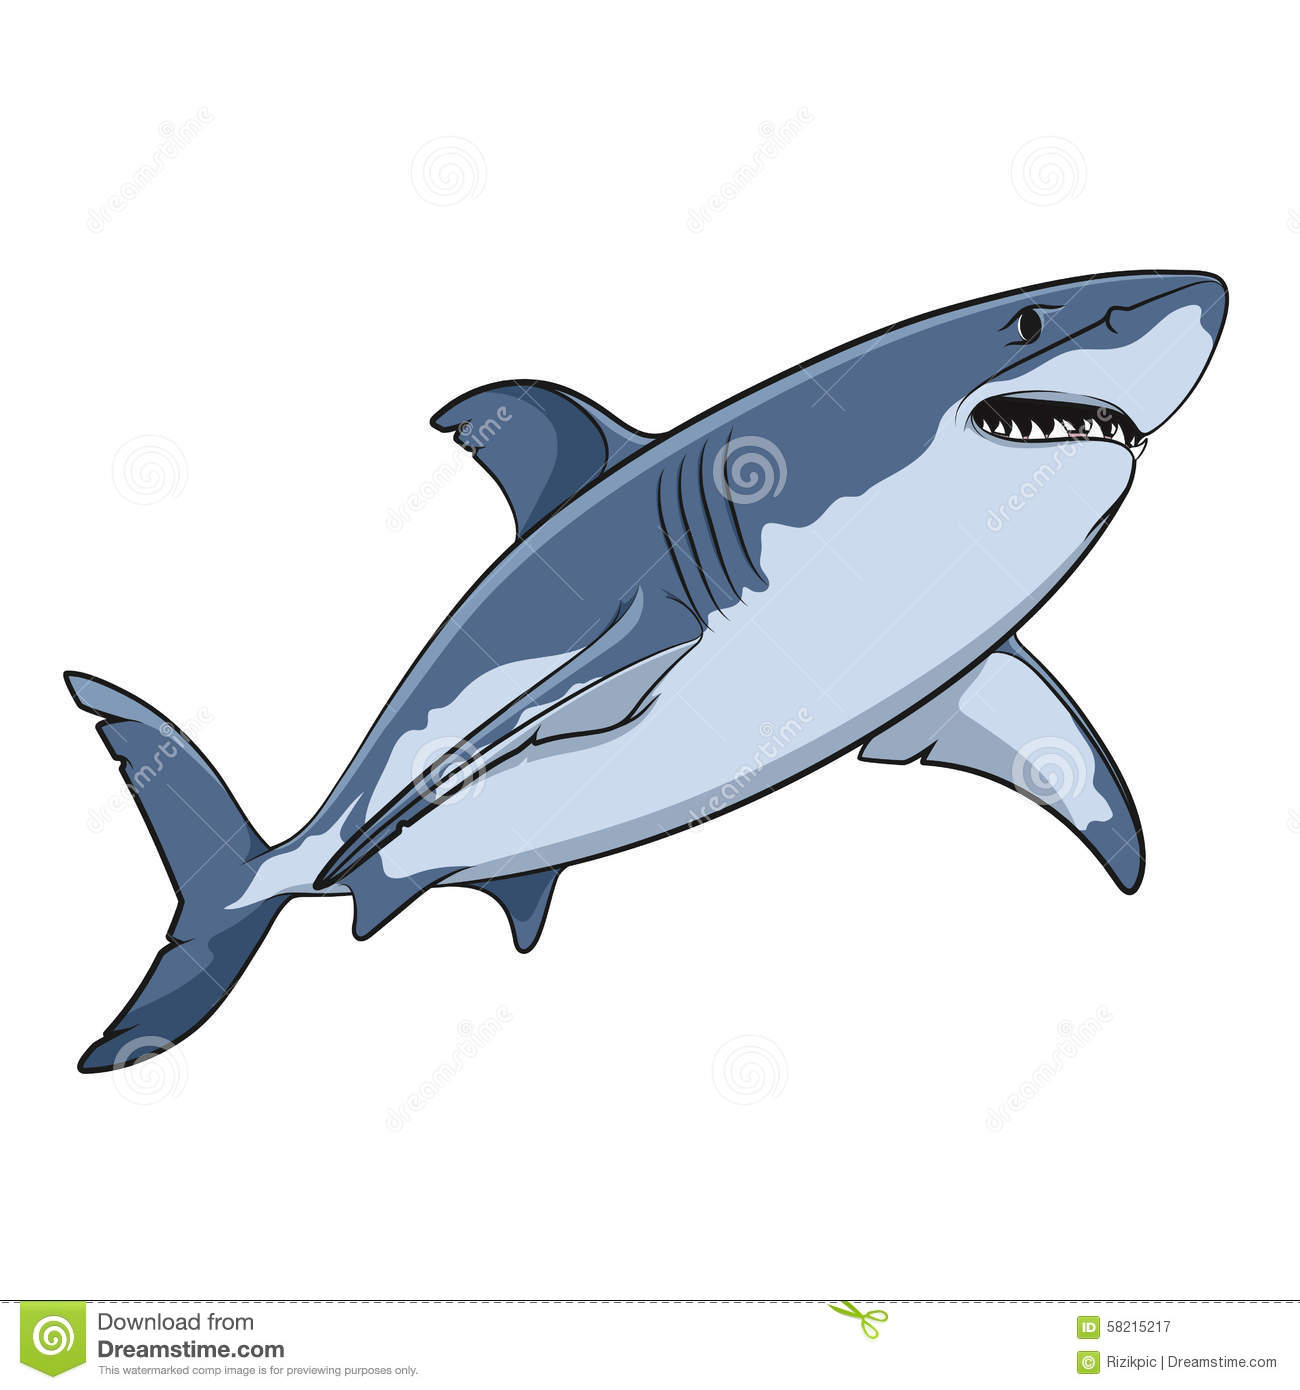 Dessin de vecteur d 39 un grand requin blanc illustration de - Dessin de requin blanc ...